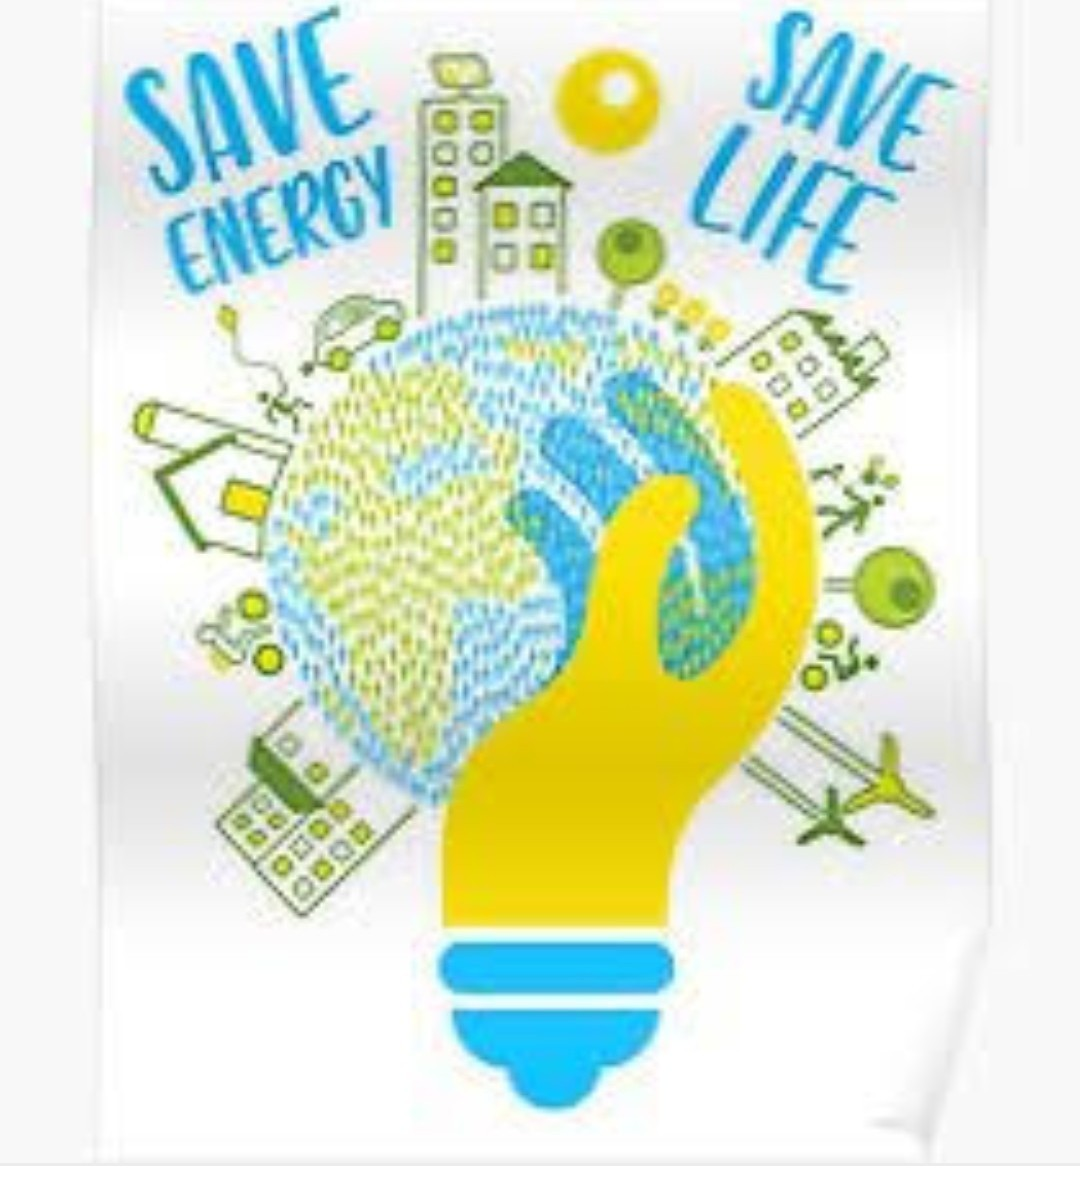 Design a poster on save energy with slogans - Brainly in